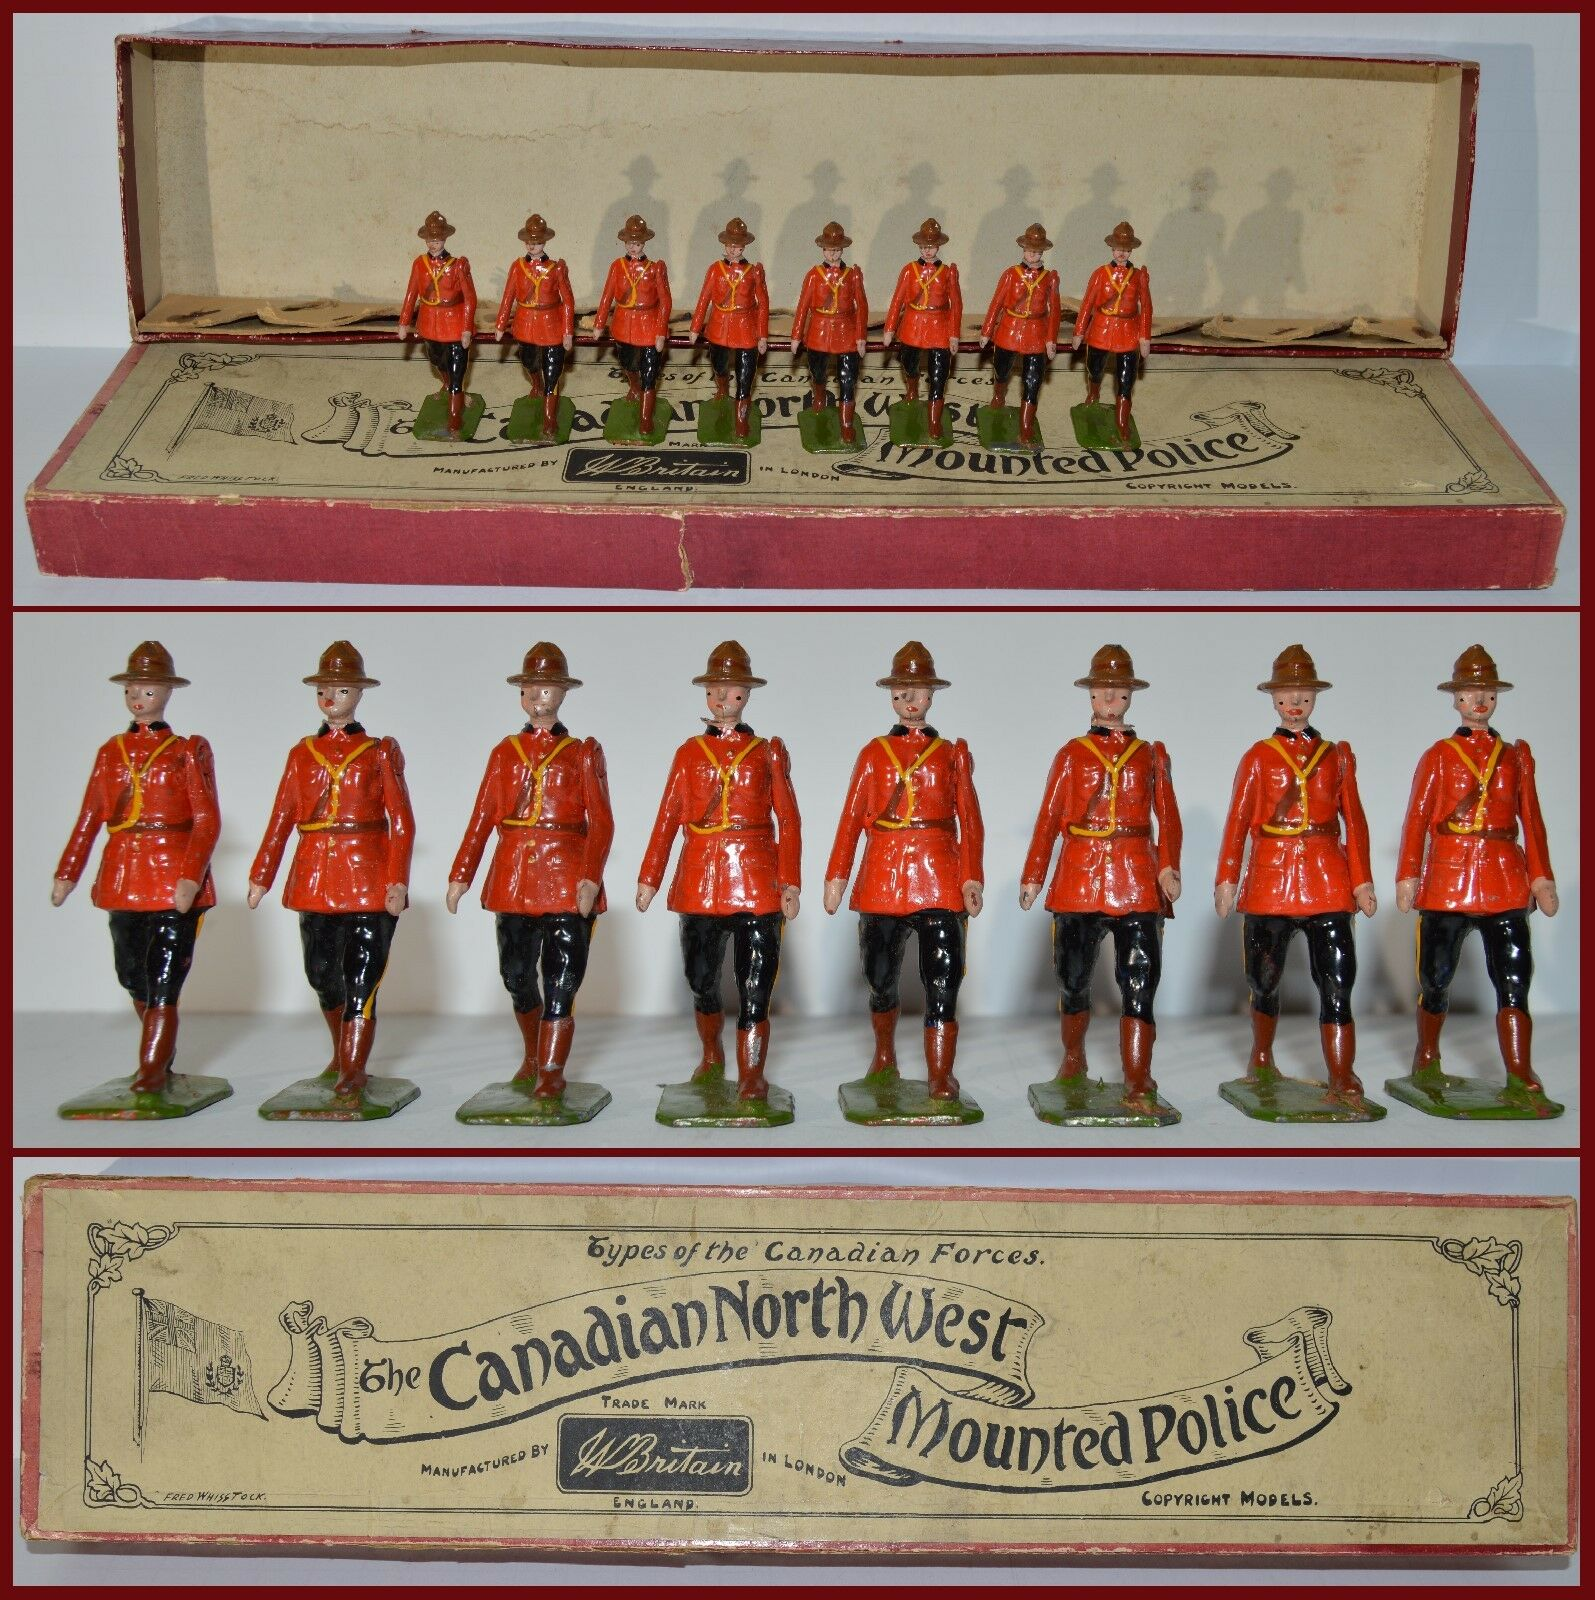 Britains Pre-War Set Royal Canadian Mounted Police  CX-1230